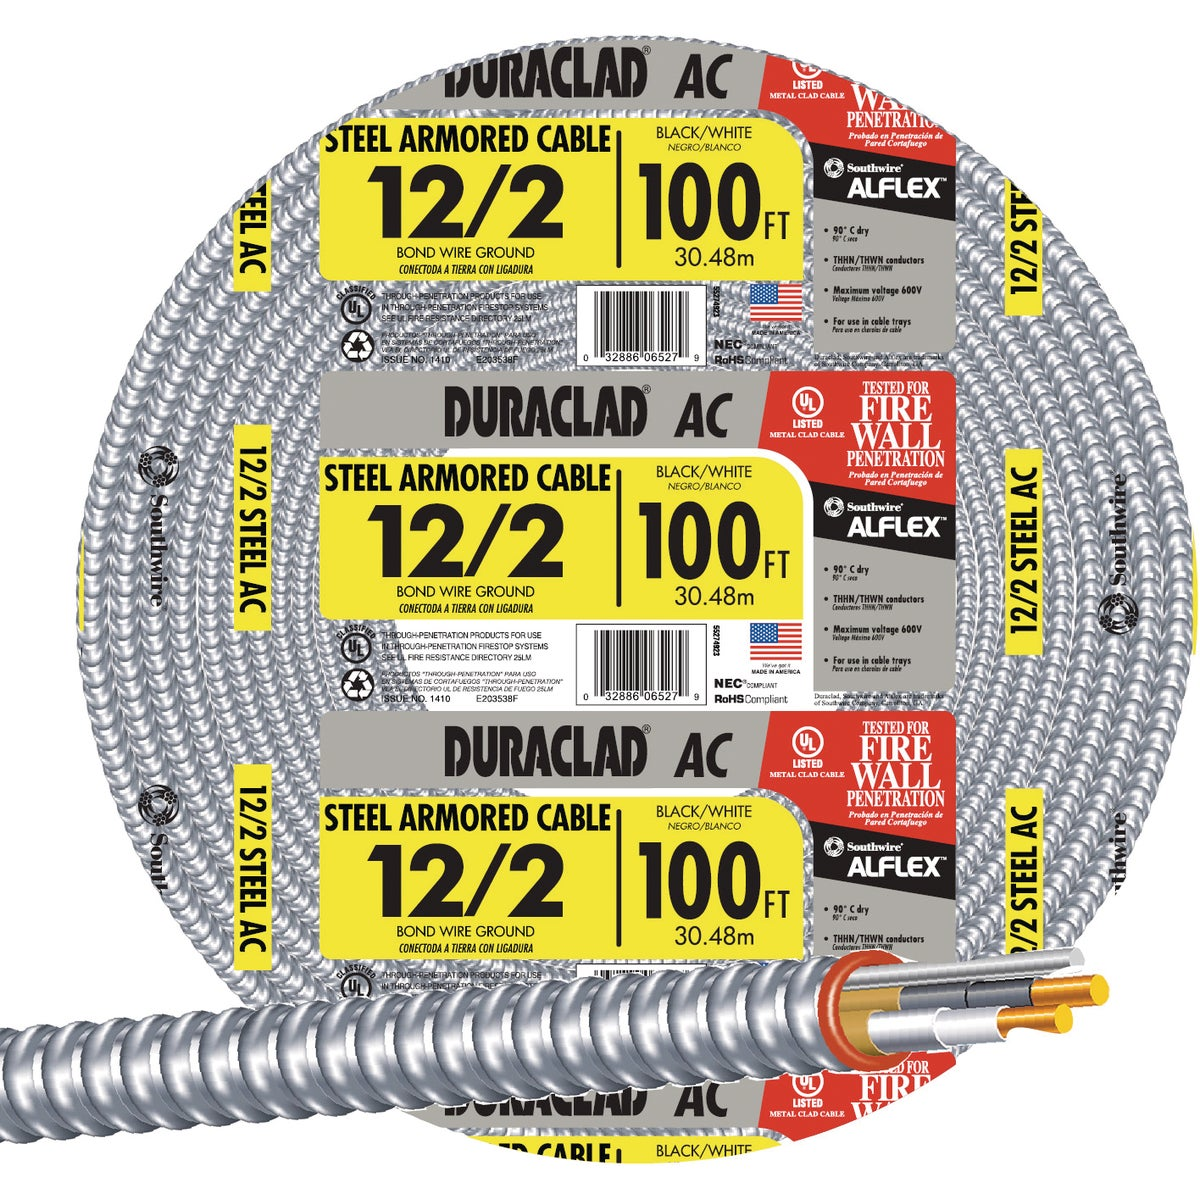 100' 12/2 Stl Armr Cable